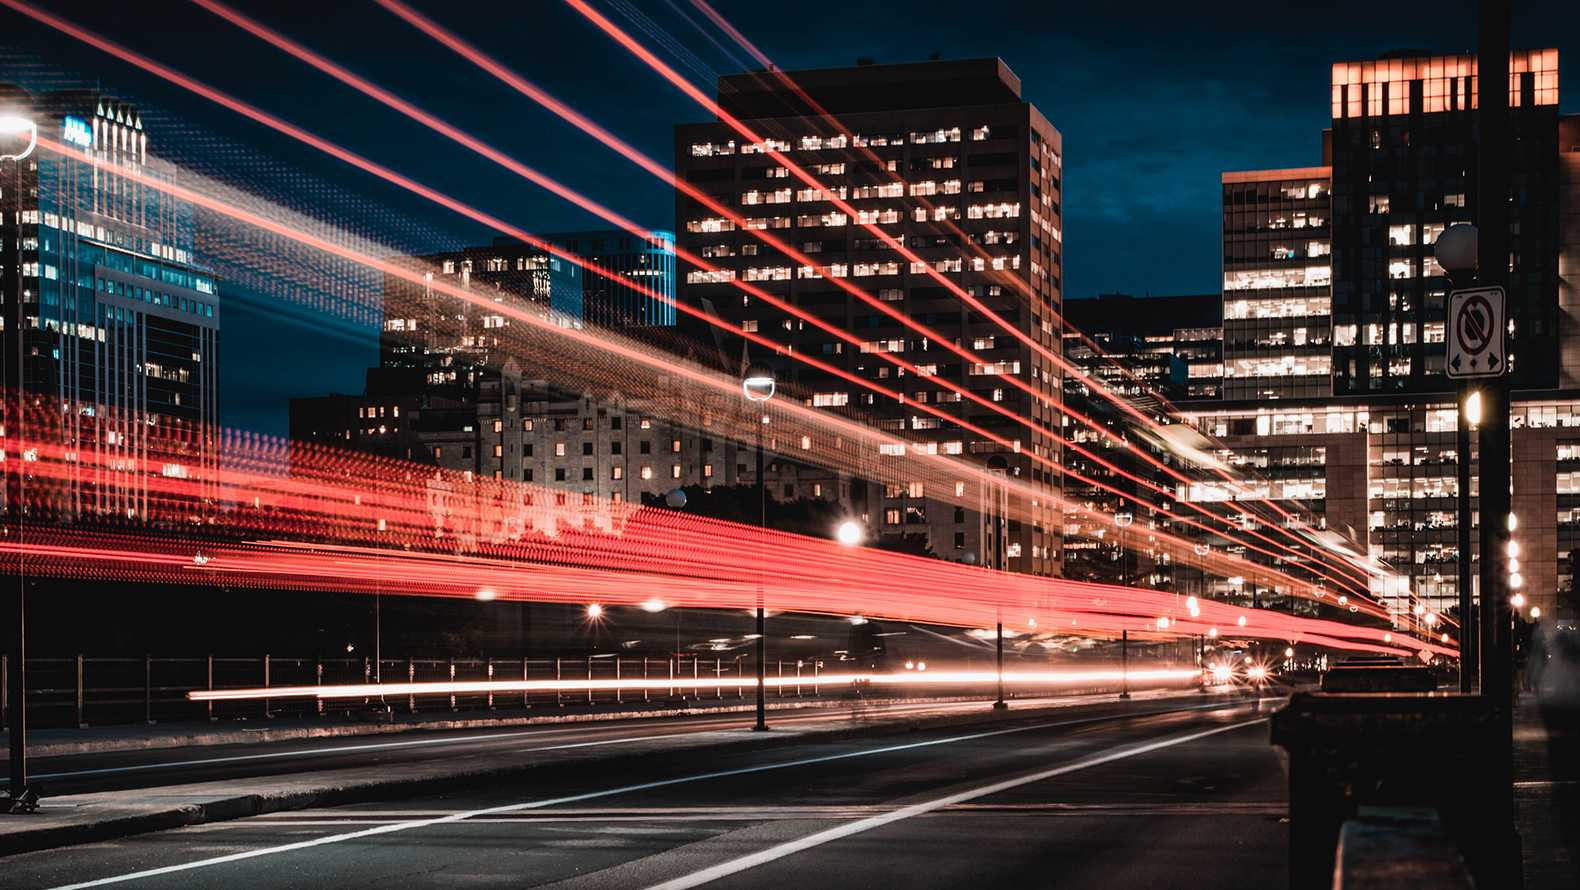 Cars at night. Photo: Marc-Olivier Jodoin at Unsplash.